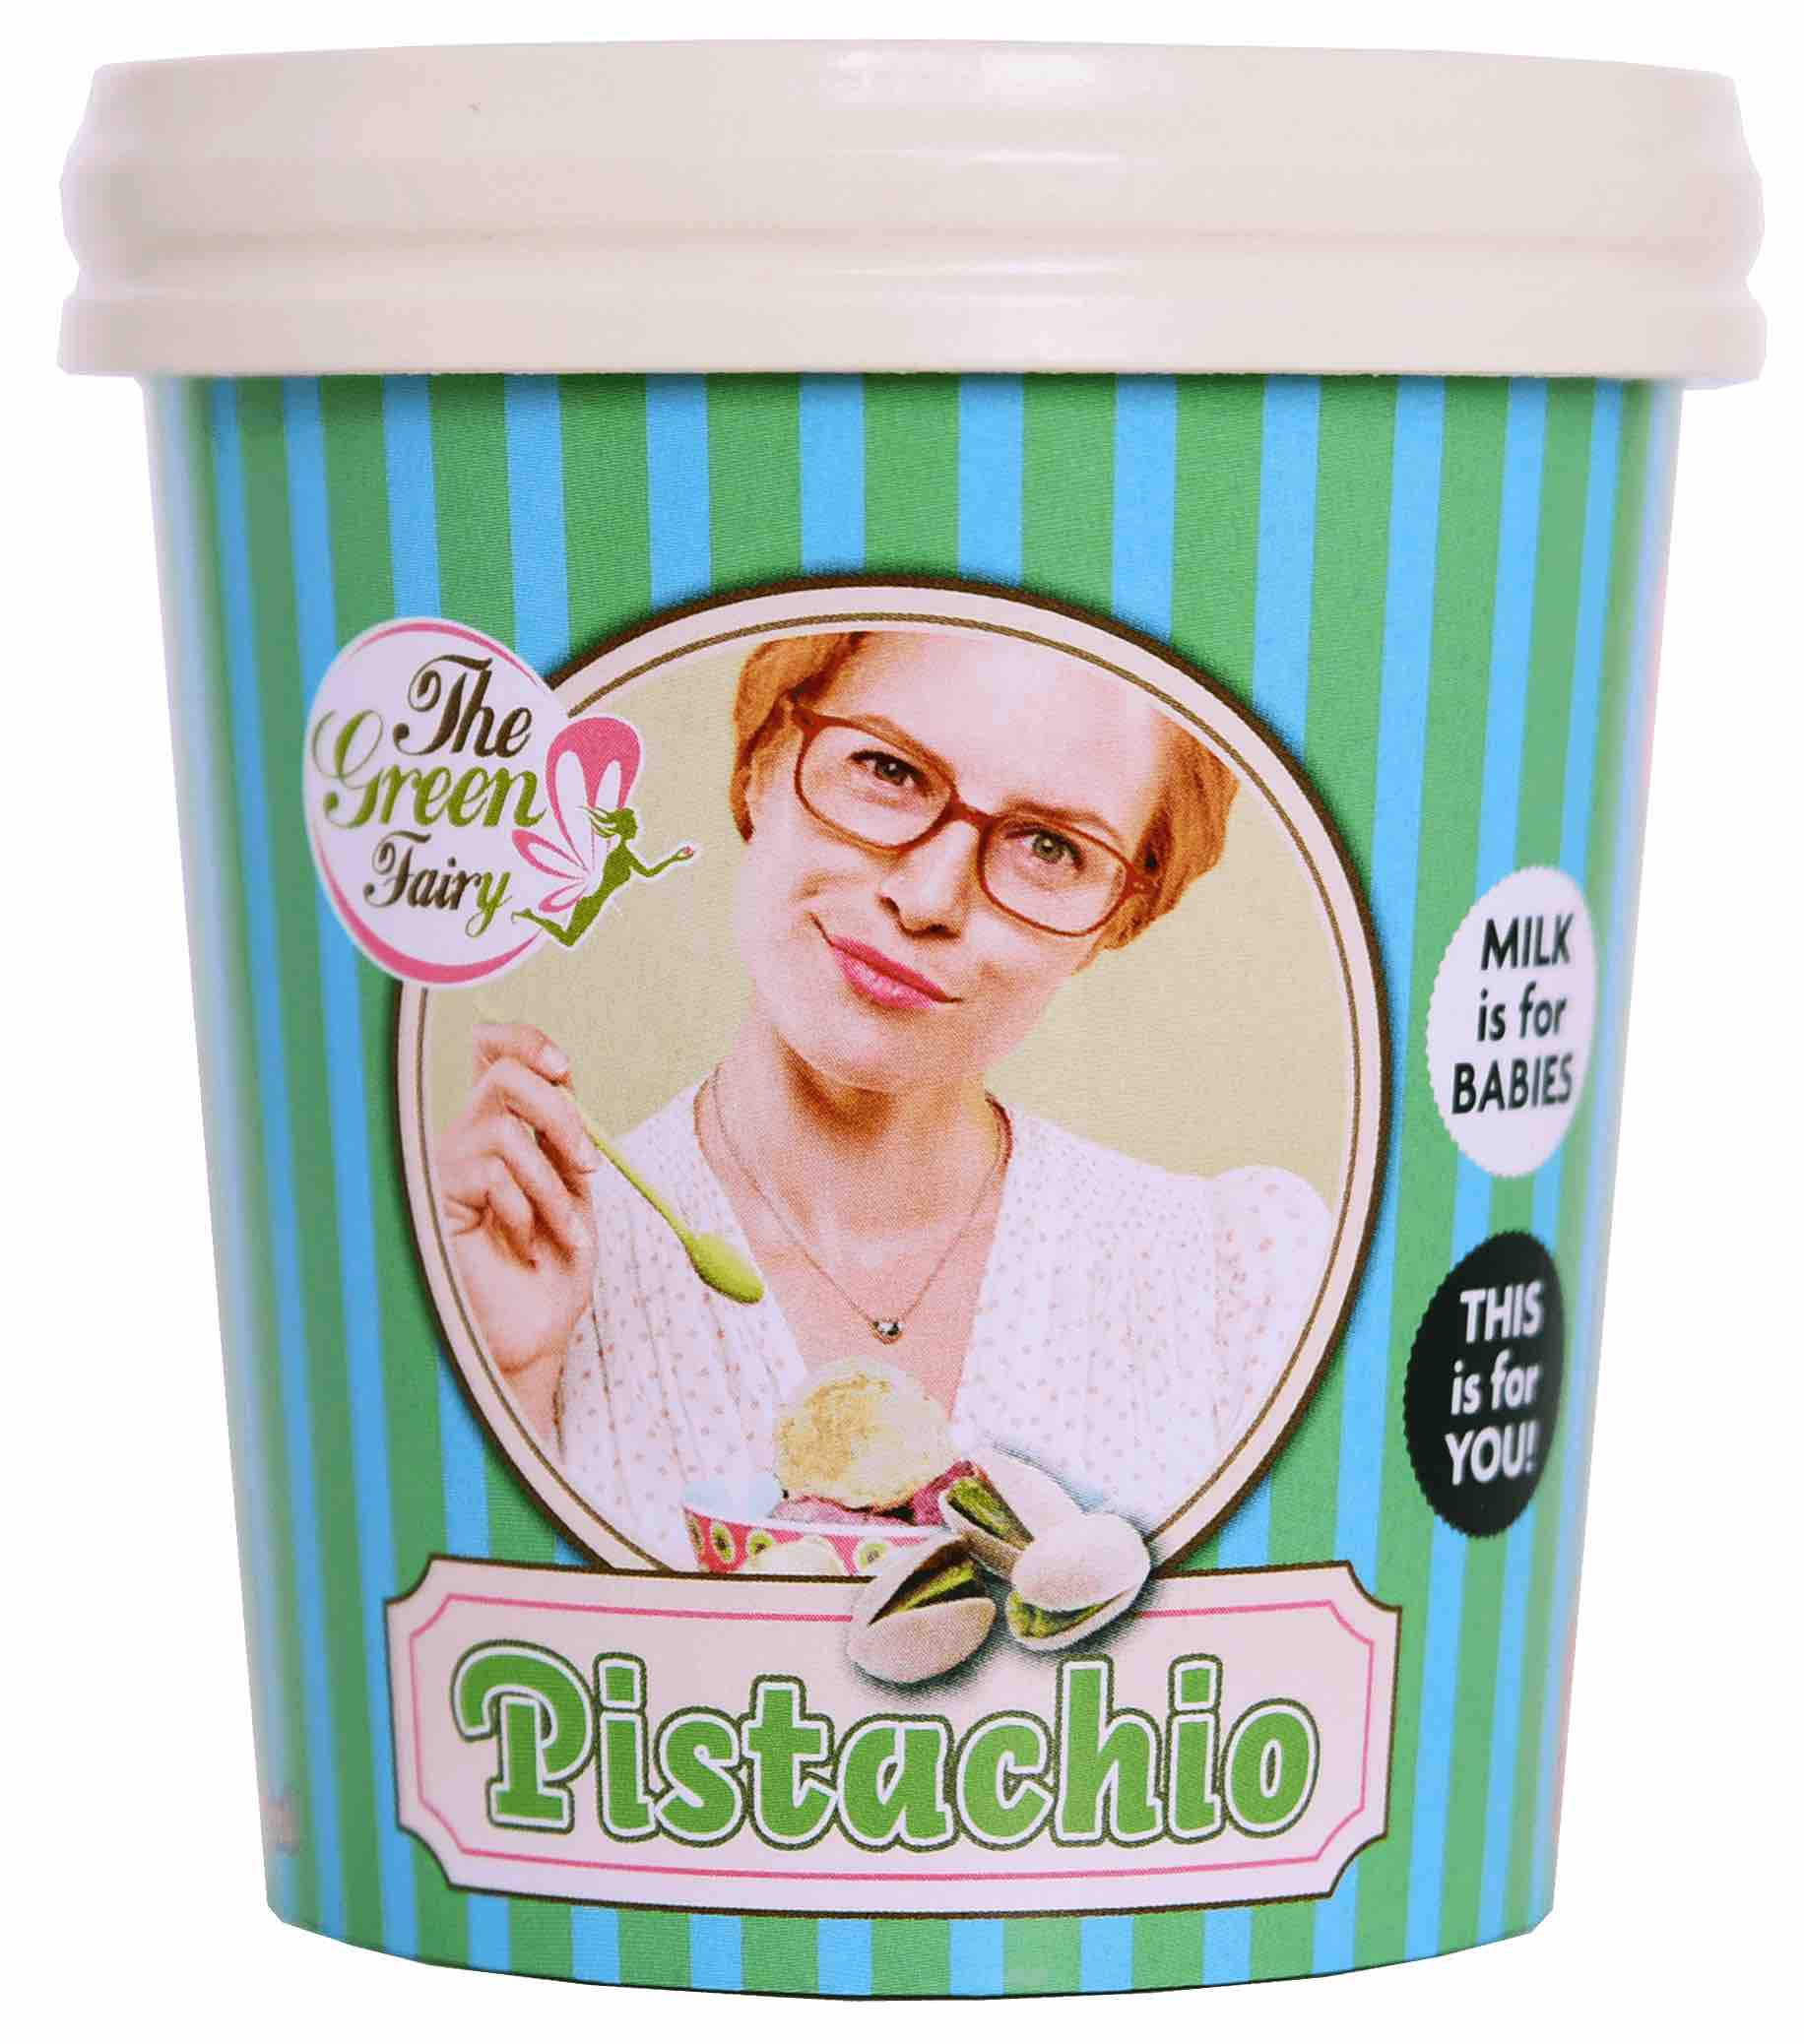 Pistachio_125ml_The Green Fairy Ice Cream_vegane bio glace_glutenfrei_laktosefrei_plantbased_switzerland